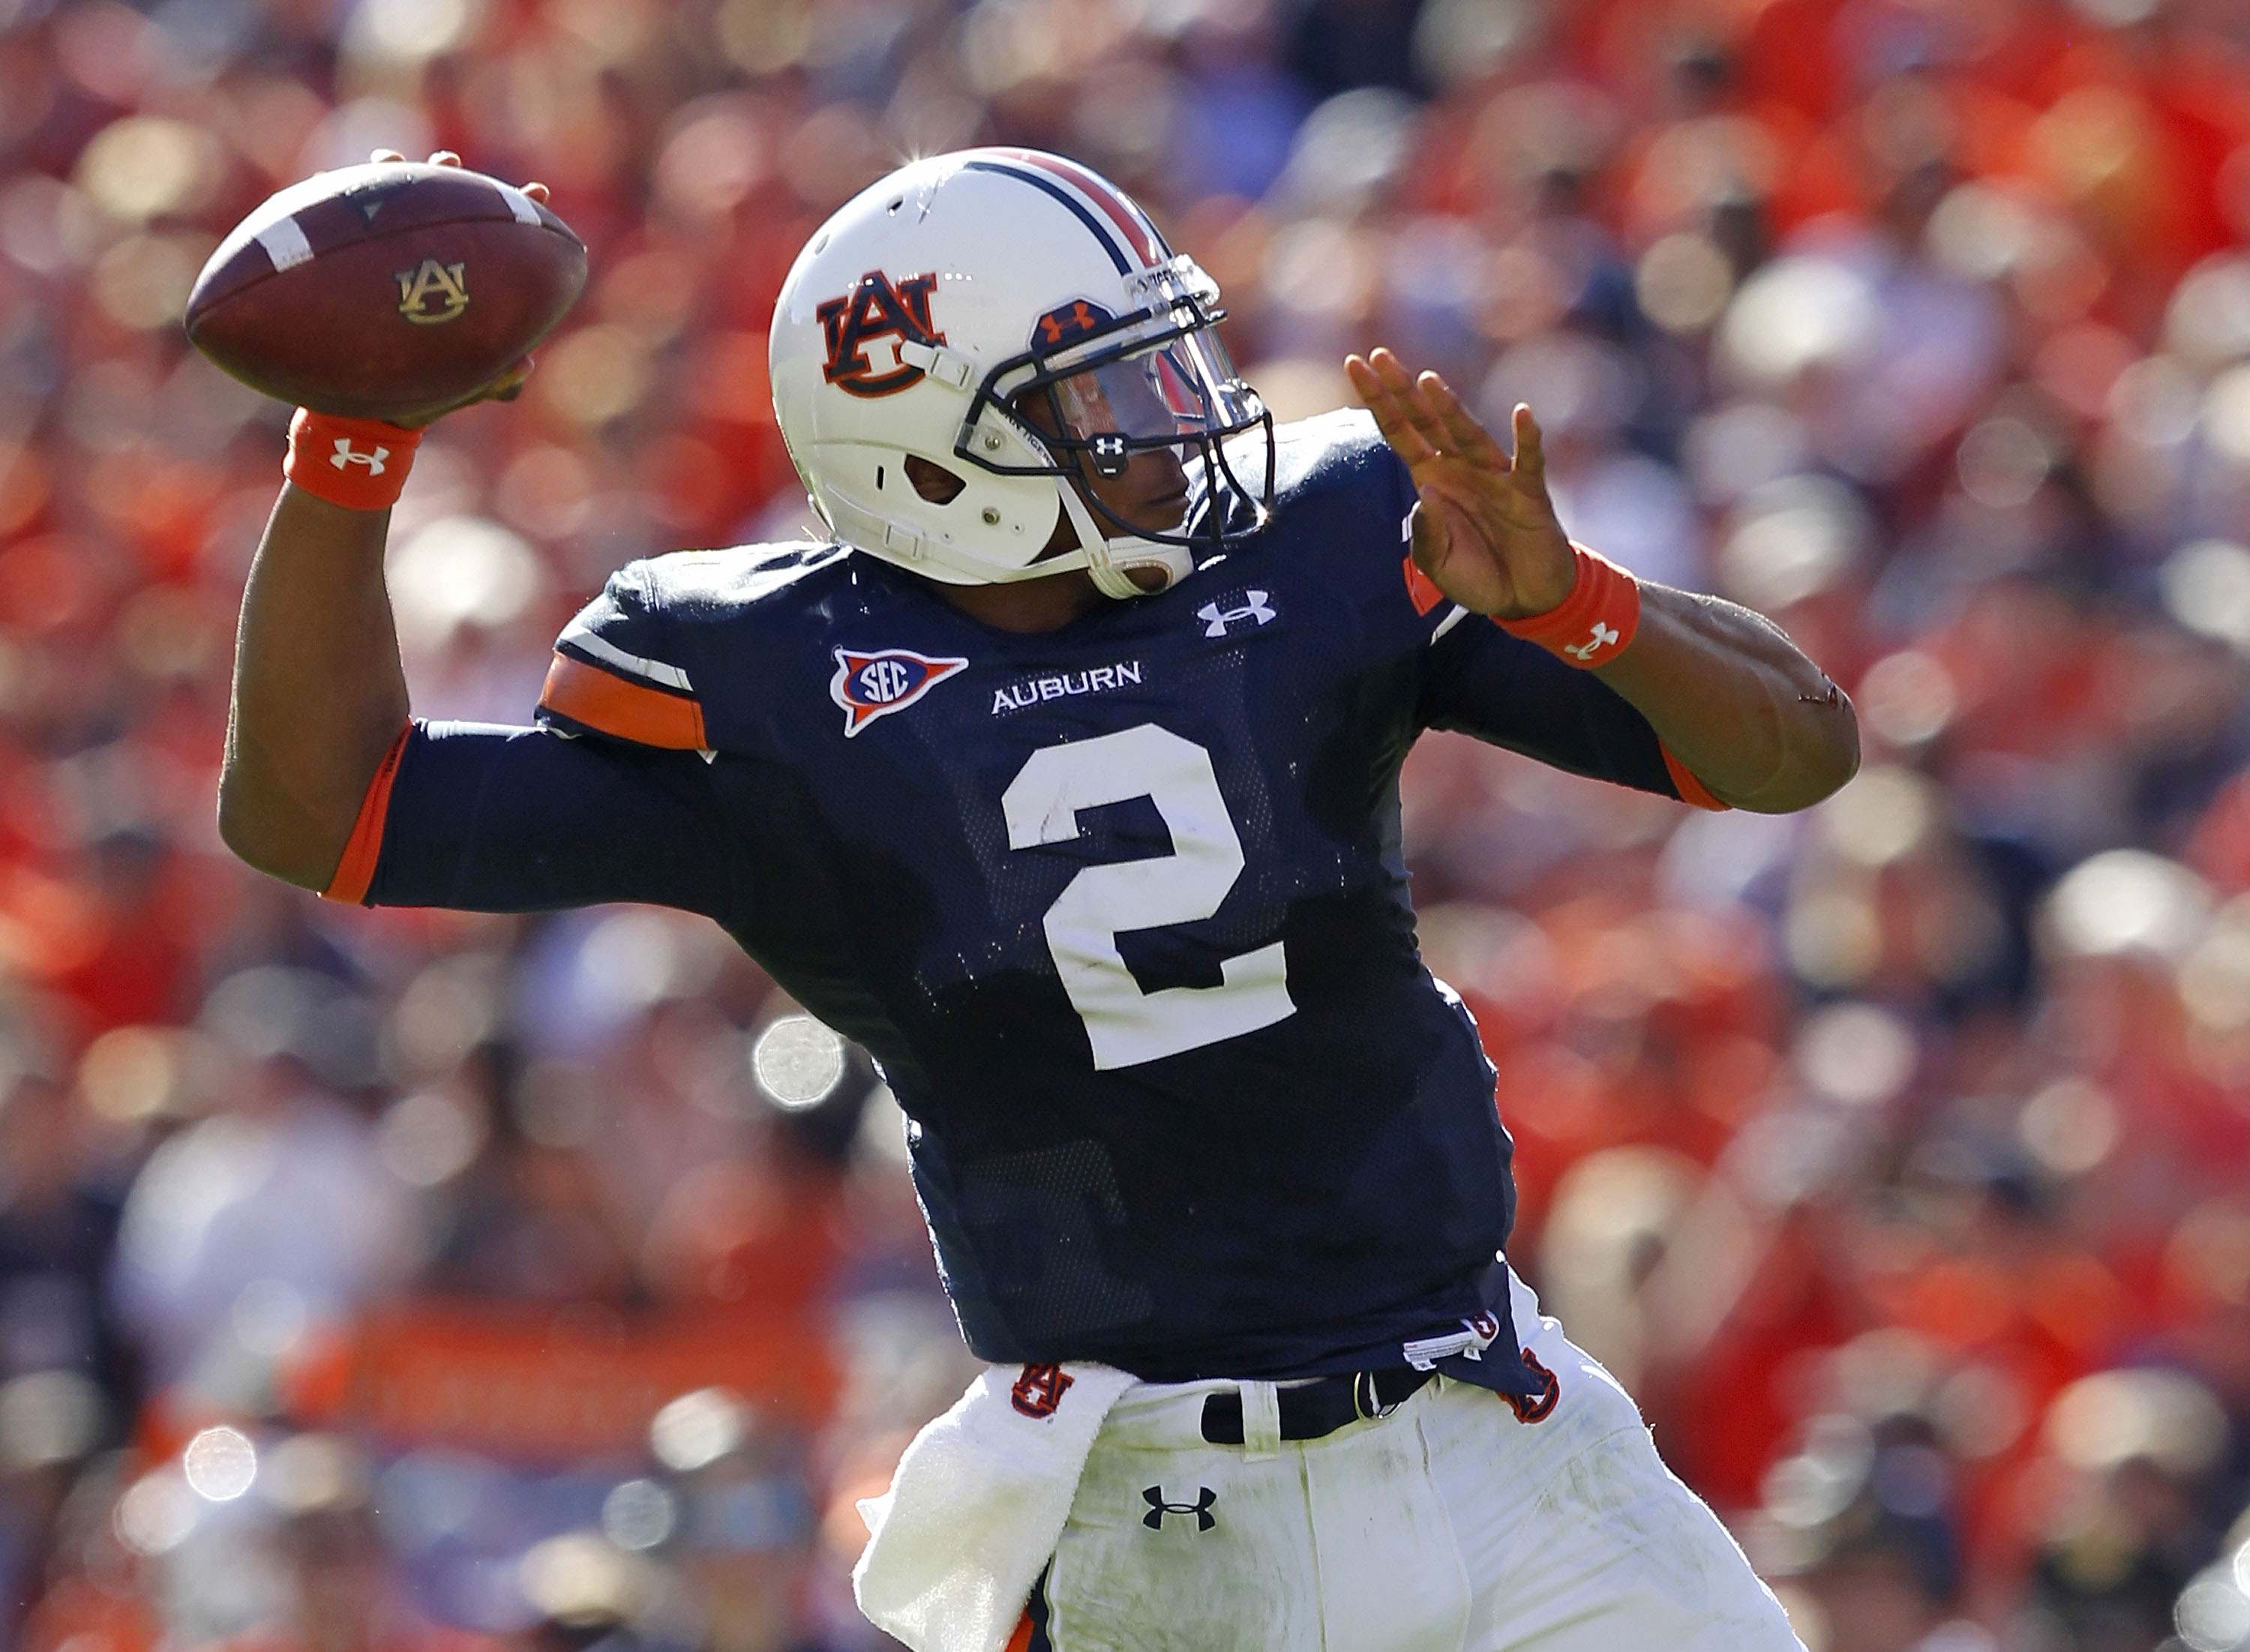 AUBURN, AL - OCTOBER 16:  Quarterback Cam Newton #2 of the Auburn Tigers throws a pass during the game against the Arkansas Razorbacks at Jordan-Hare Stadium on October 16, 2010 in Auburn, Alabama.  (Photo by Mike Zarrilli/Getty Images)